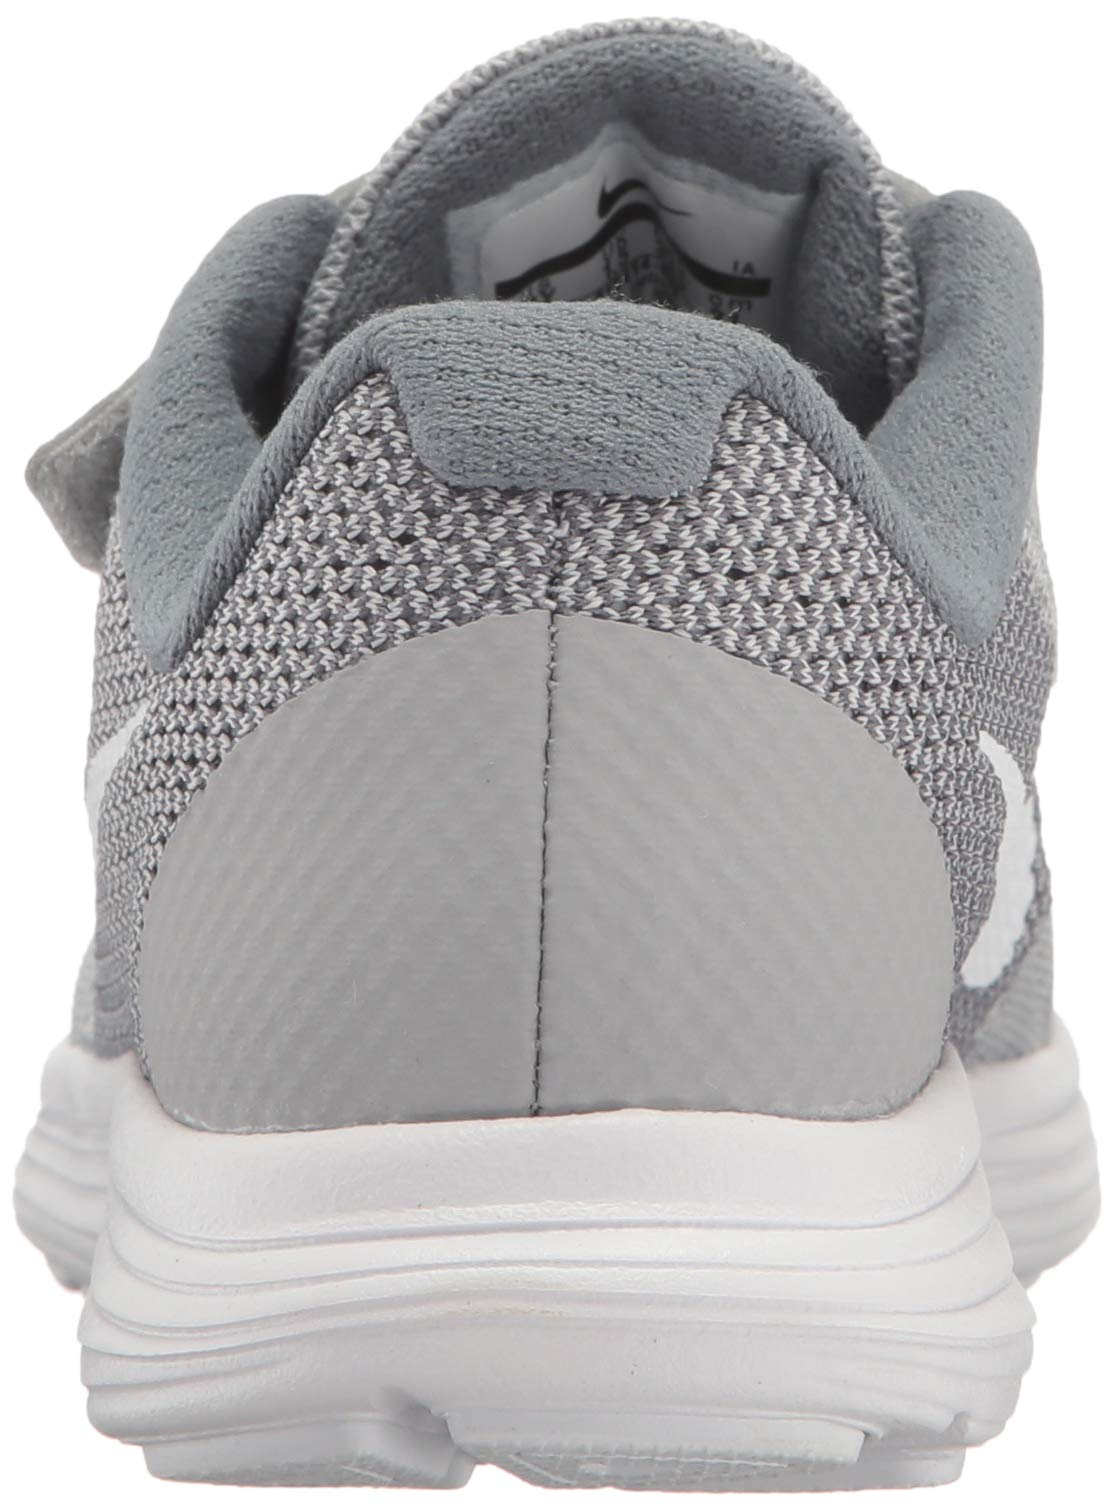 NIKE Kids' Revolution 3 (Psv) Running-Shoes, Wolf Grey/White/Cool Grey, 1 M US Little Kid by Nike (Image #2)